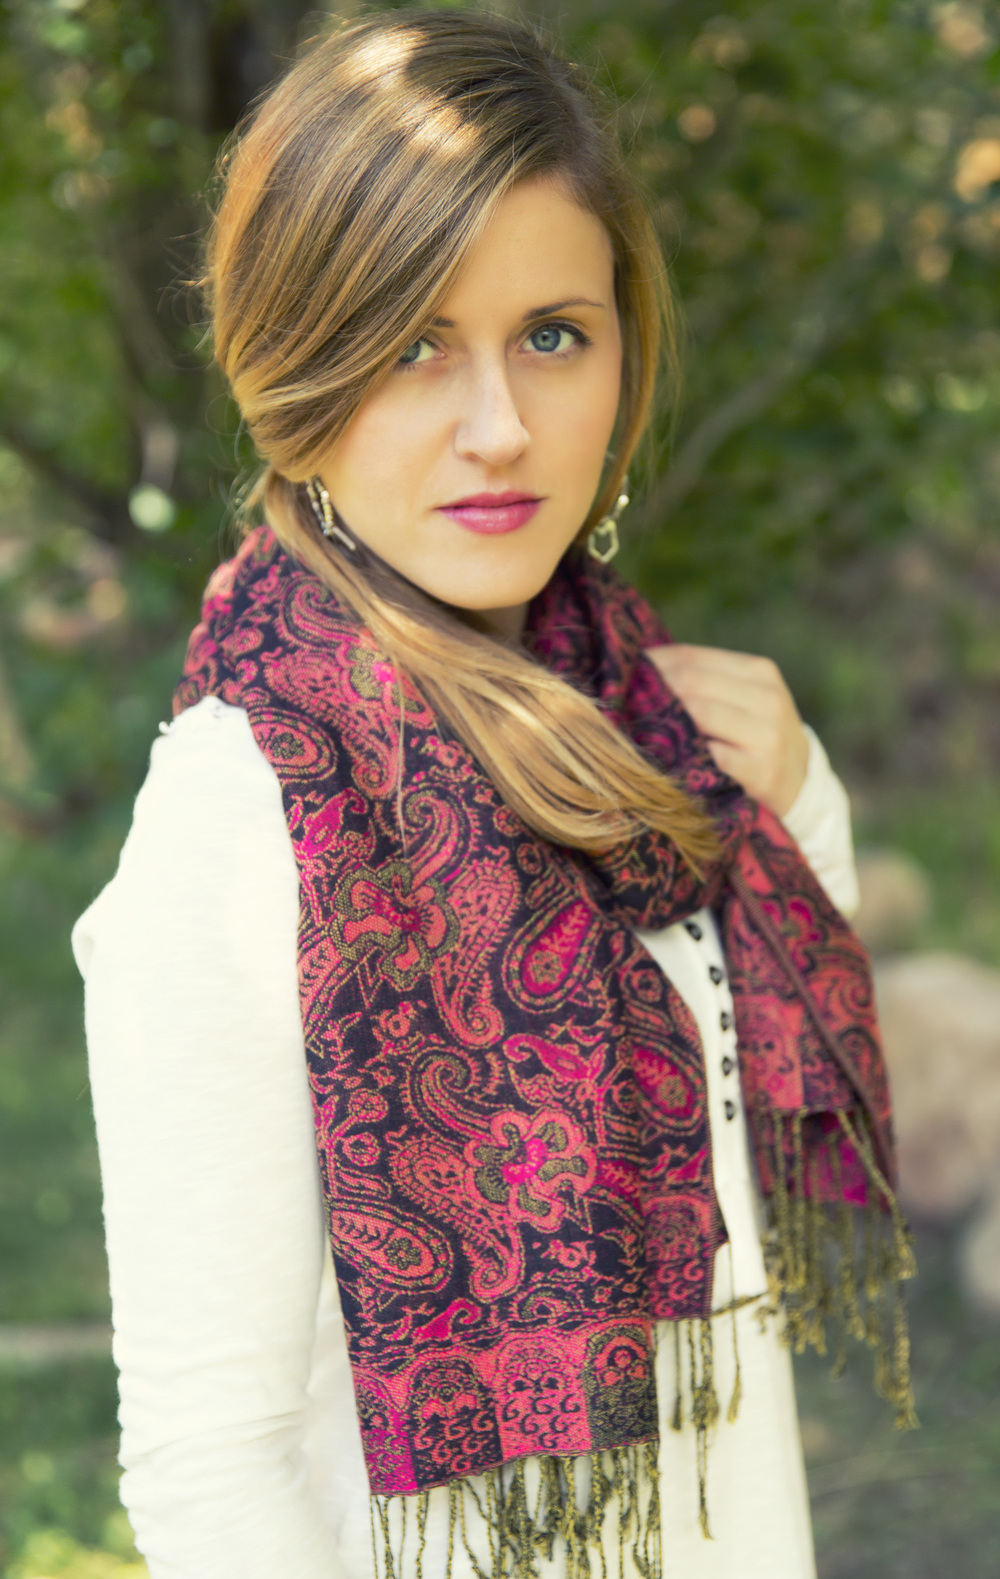 Pashmina Scarf - Photo by Katherine Accettura